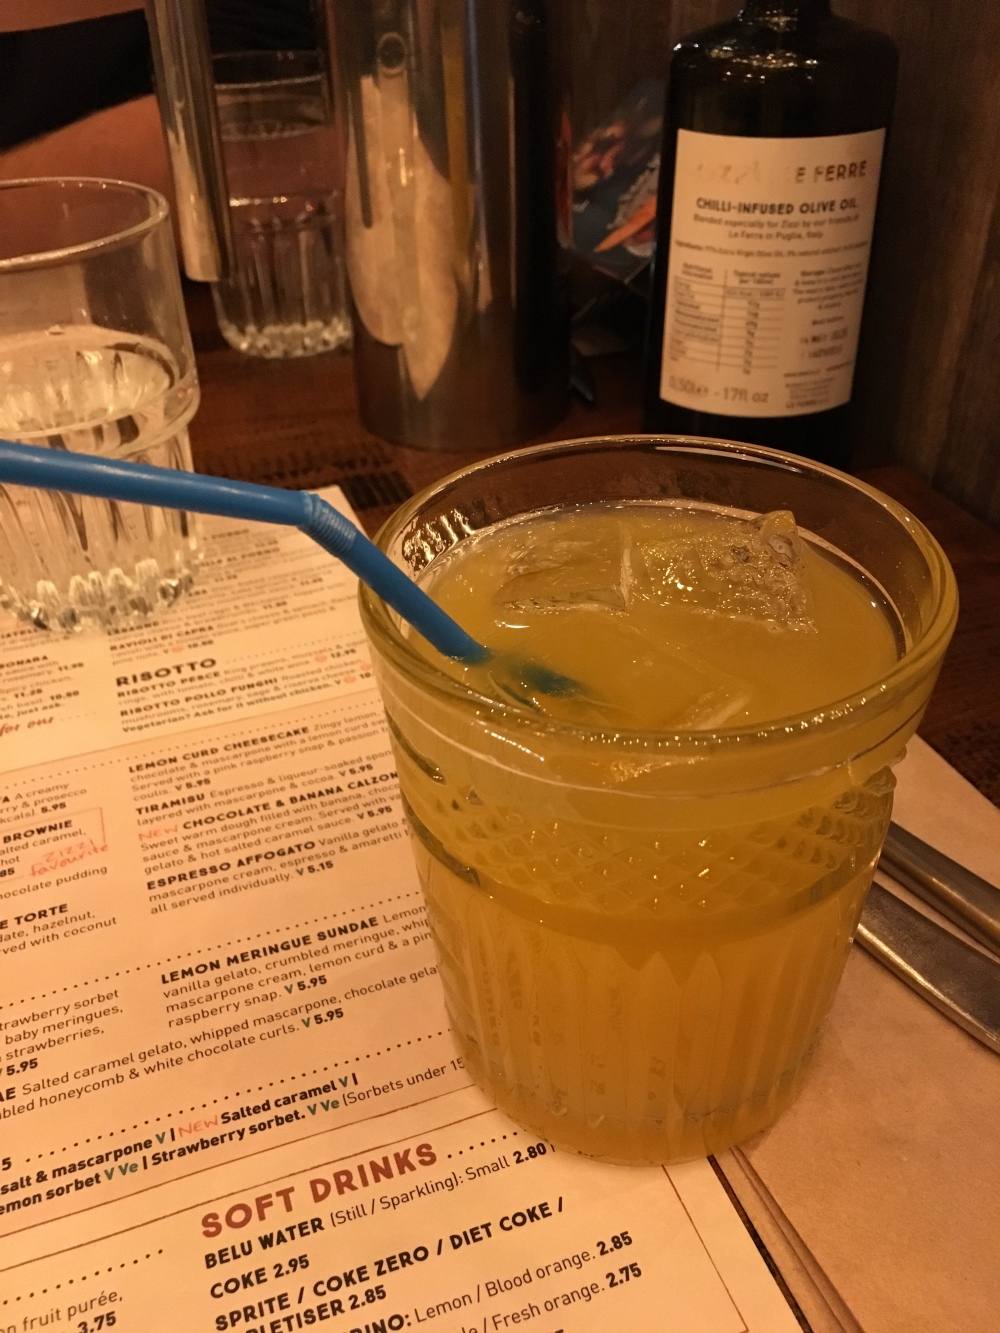 A short decorative glass with a yellow/orange liquid and ice in as well as a blue plastic bendy straw. The glass is sat on a menu and white napkin. There are other general restaurant item in the background including a water glass, olive oil and water jug.